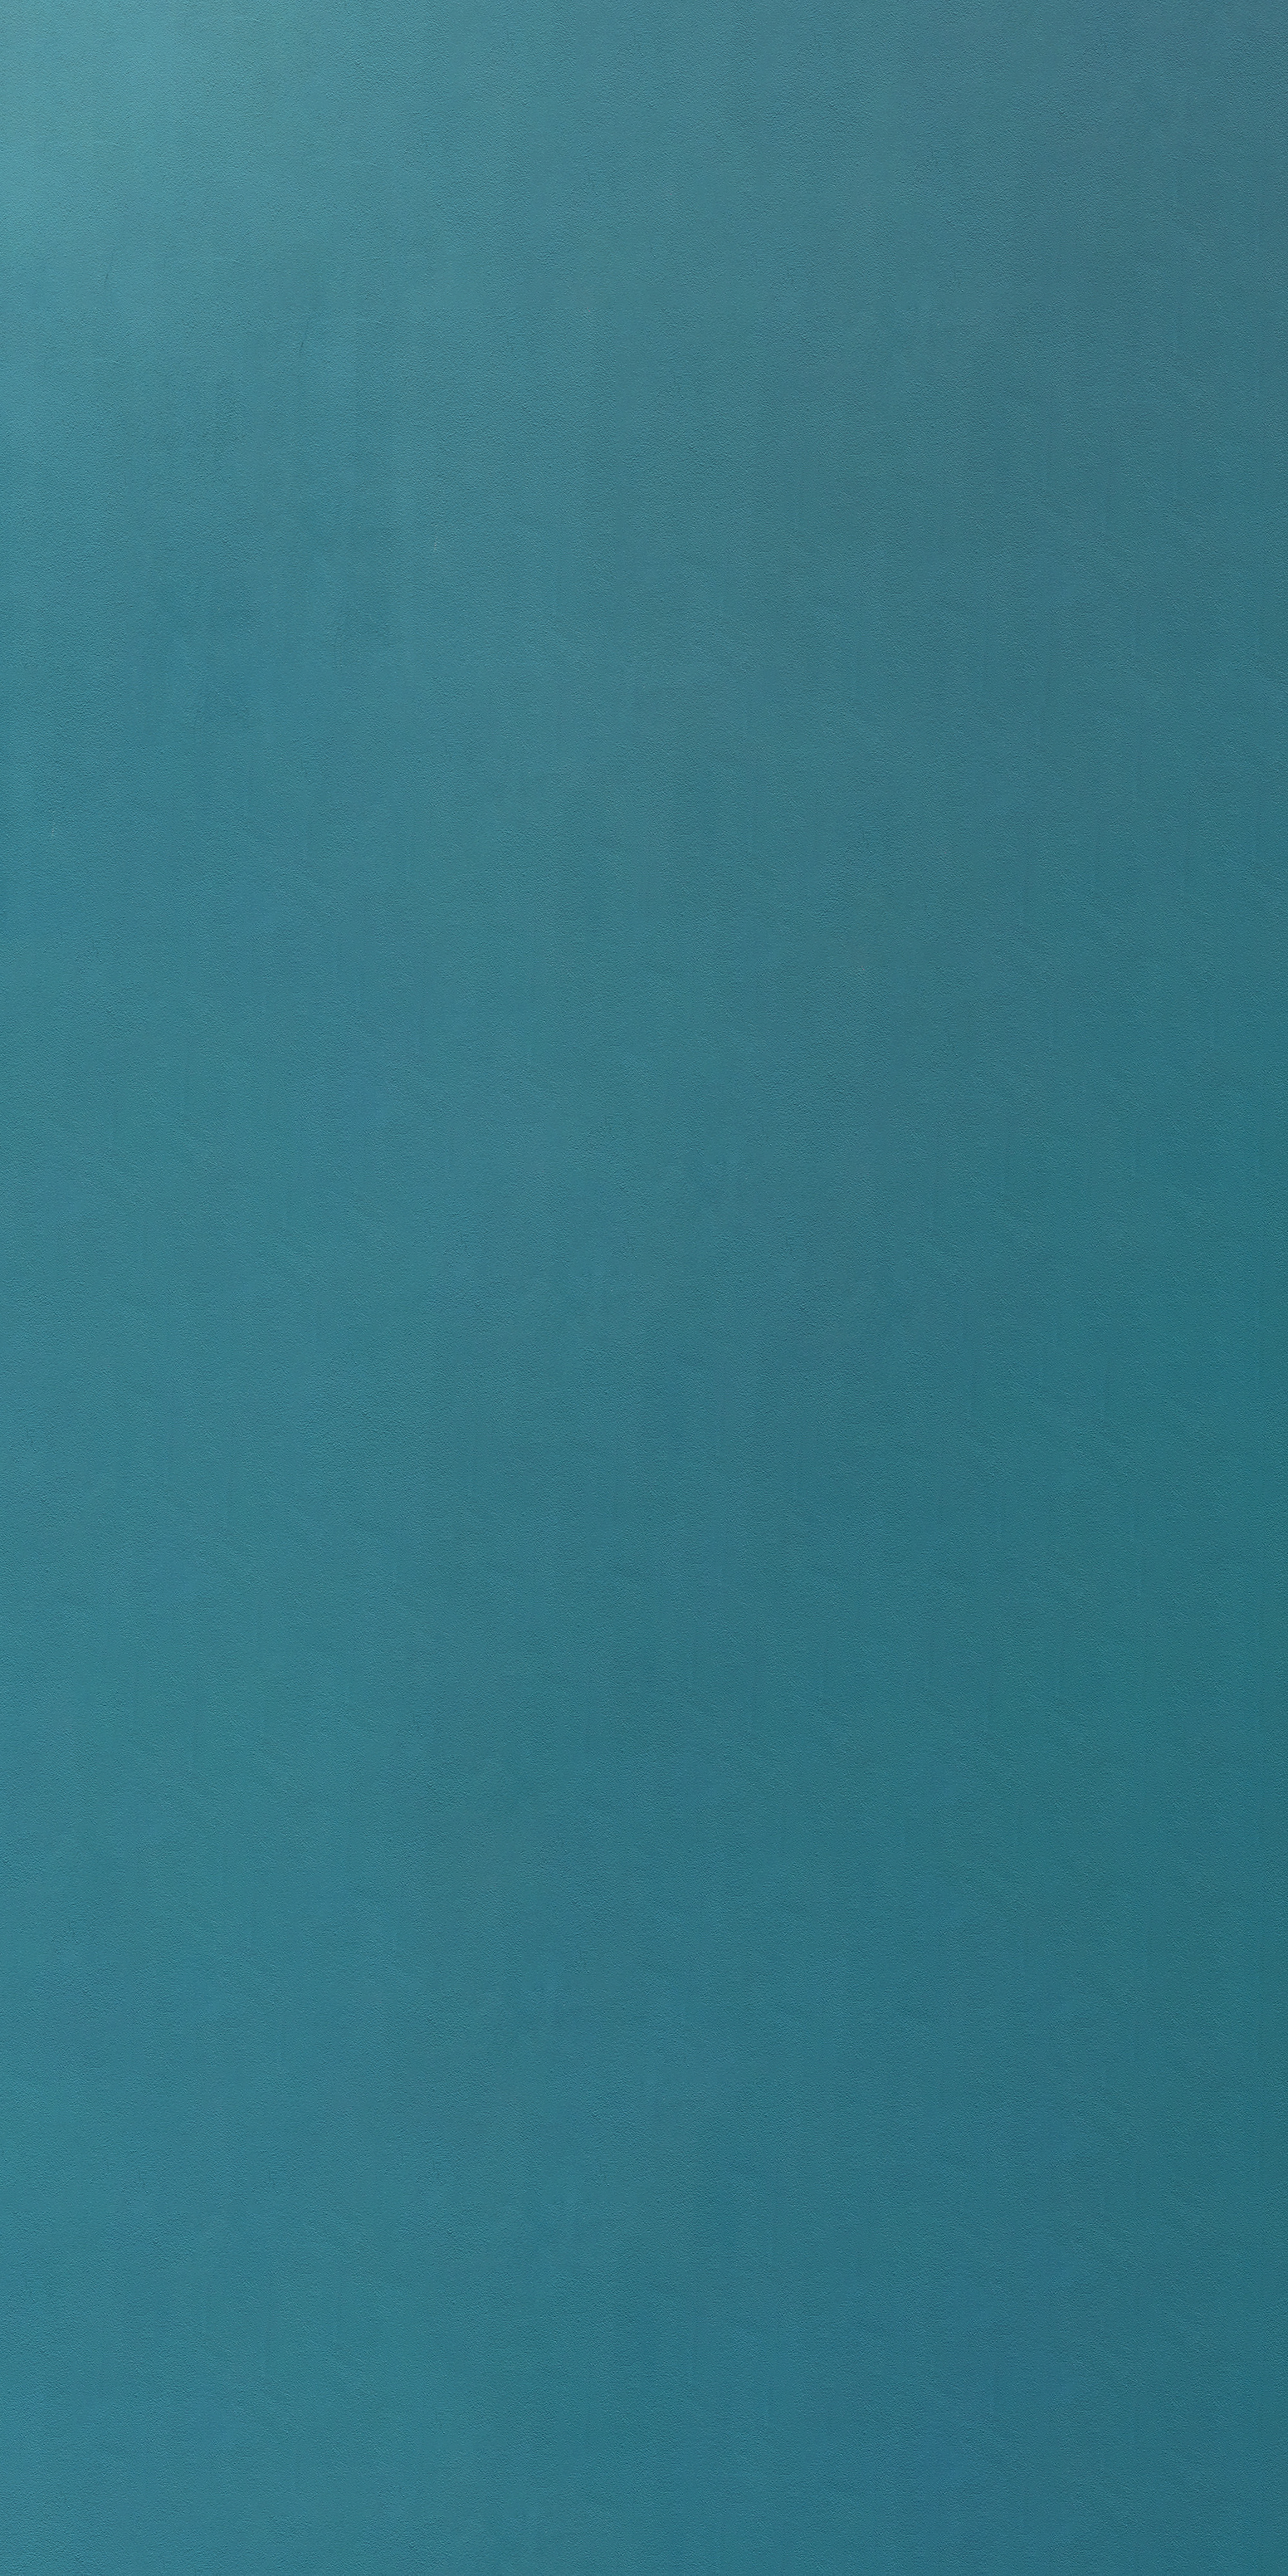 Vicky-155_teal blank tall.png